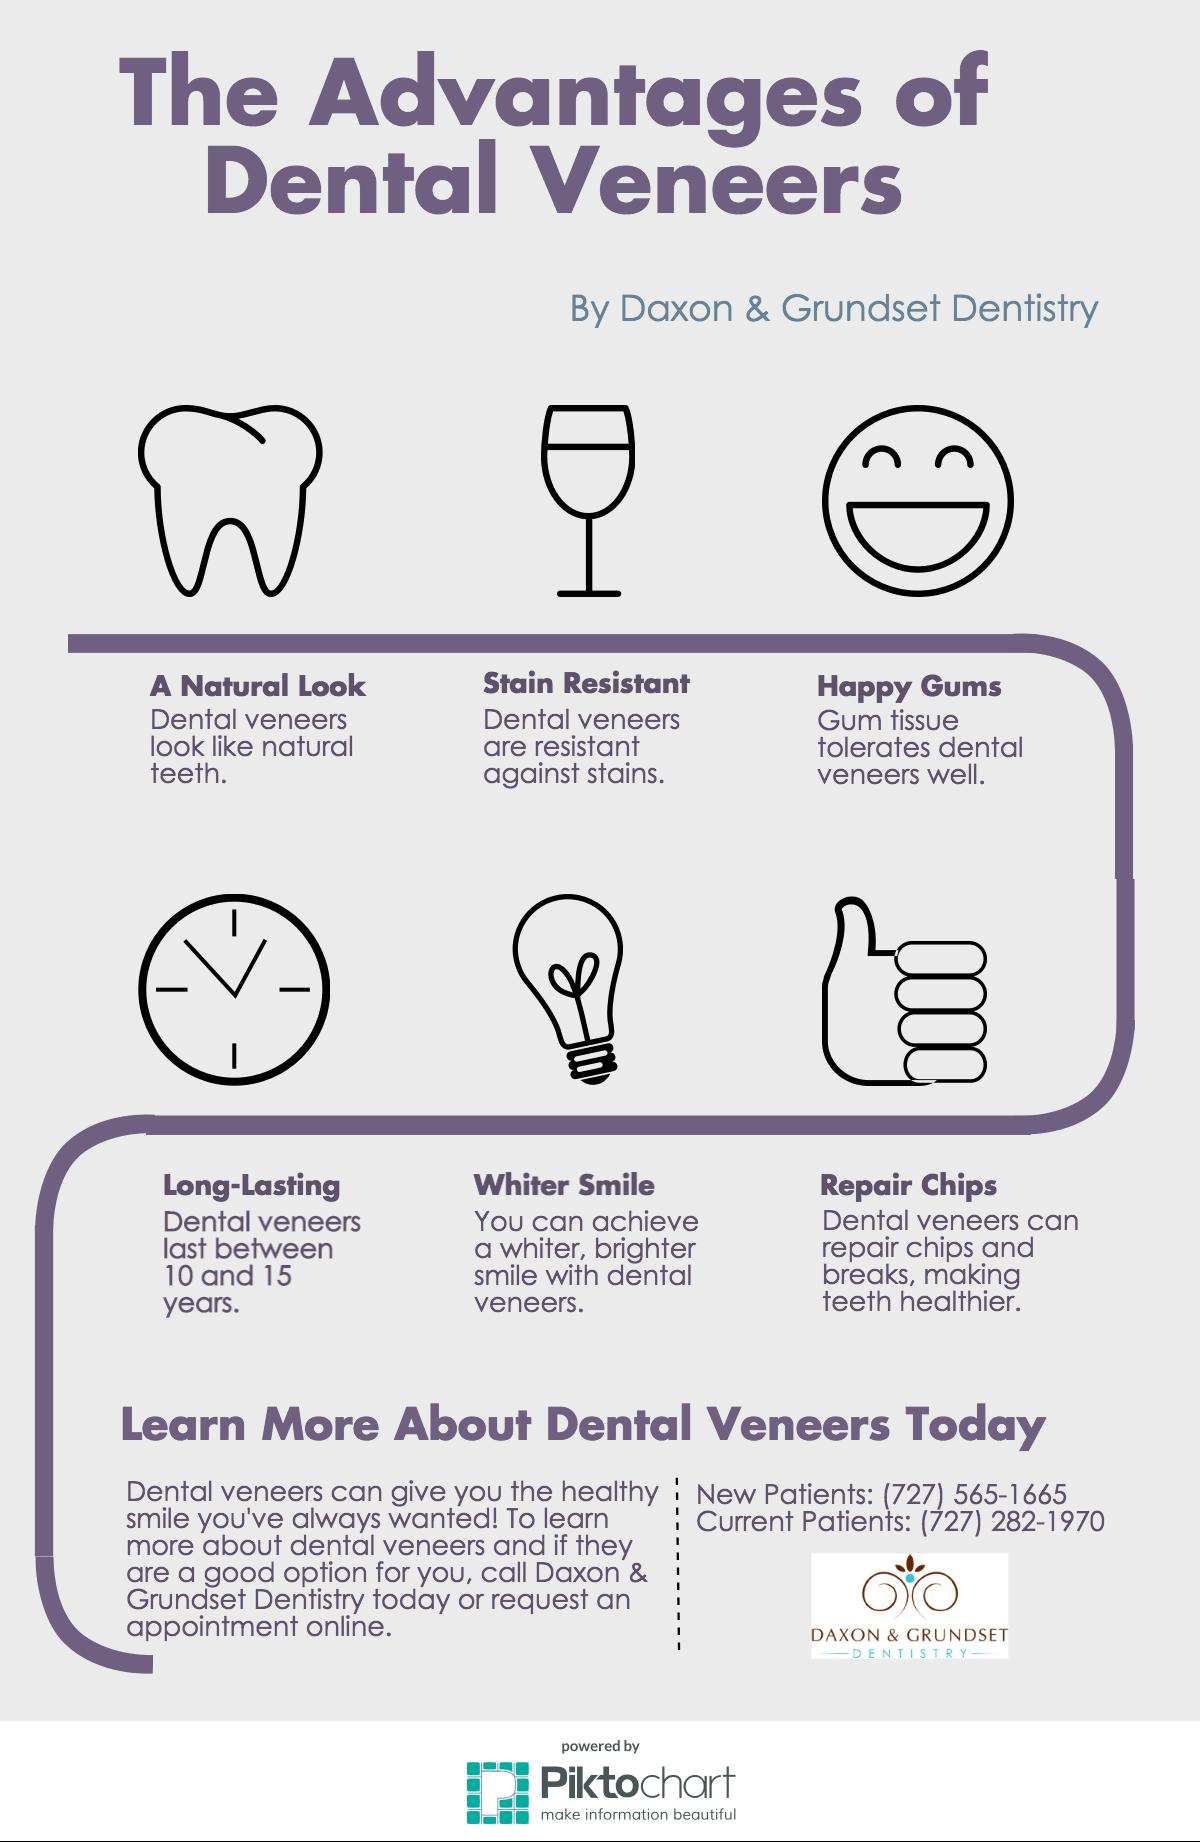 The Advantages of Dental Veneers